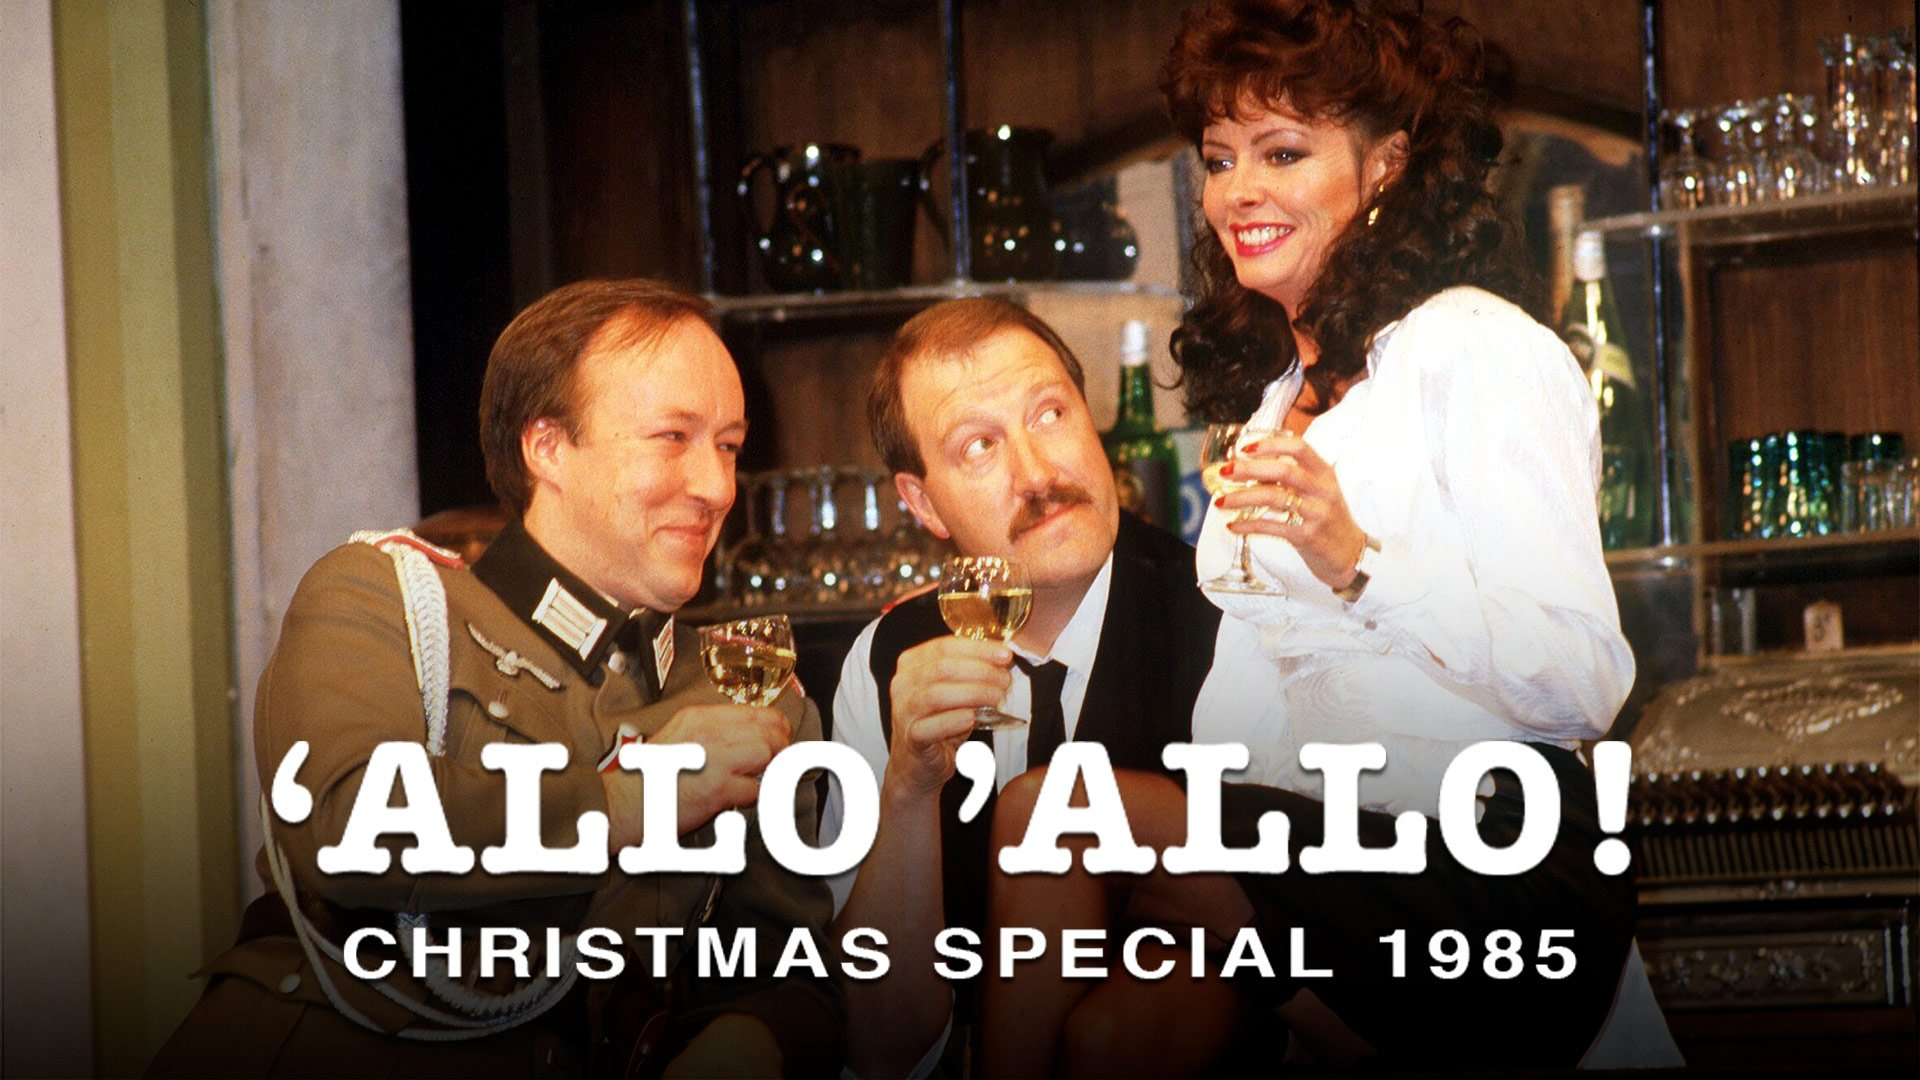 'Allo, 'Allo! Christmas Special 1985: The Gateau from the Chateau on BritBox UK